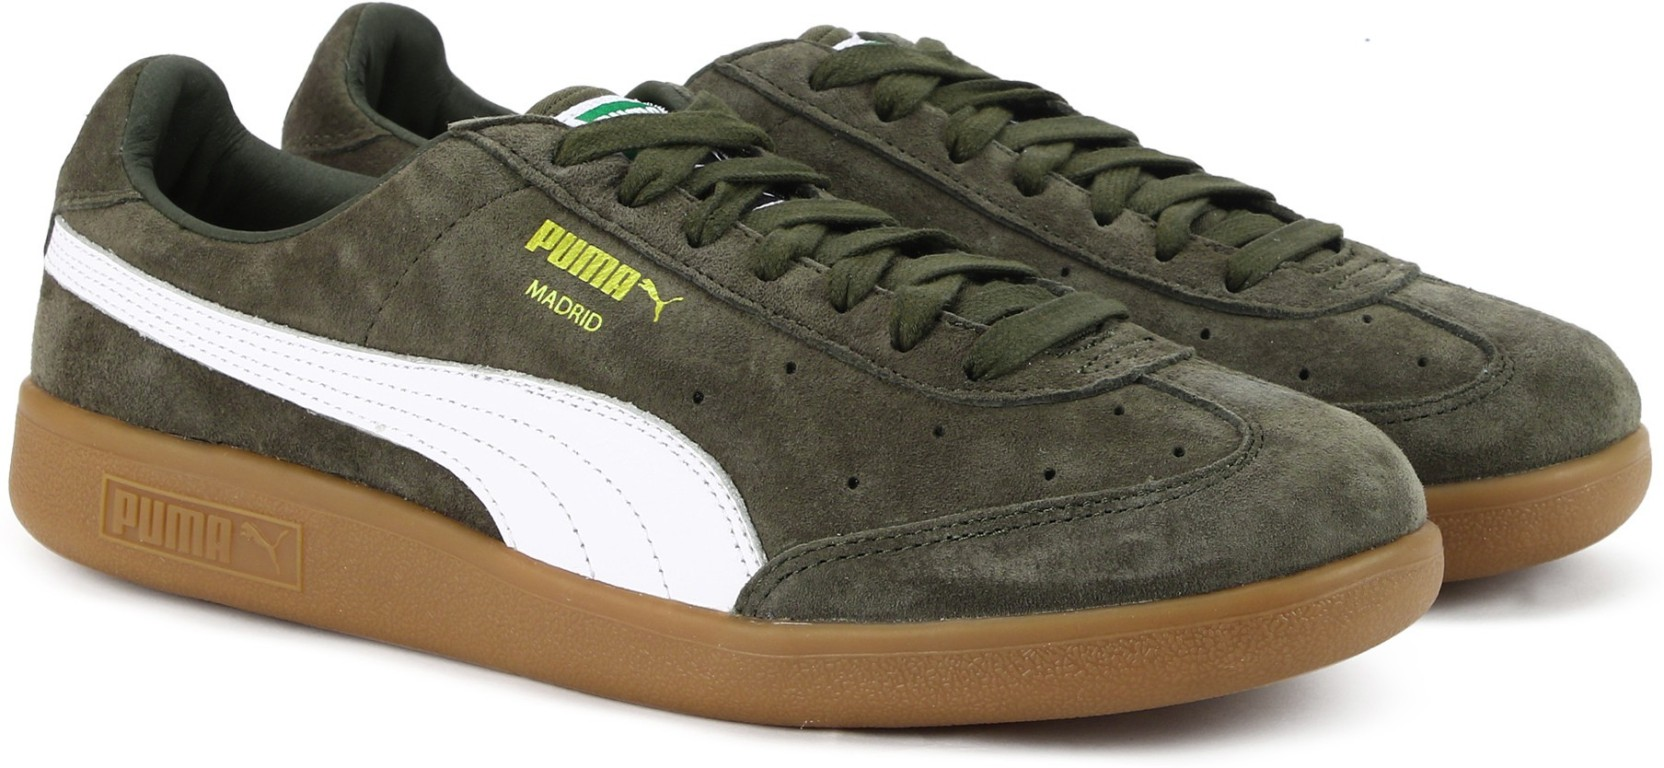 112149b0b0b5 Puma Madrid Suede Sneakers For Men - Buy Olive Night-Puma White-Puma ...